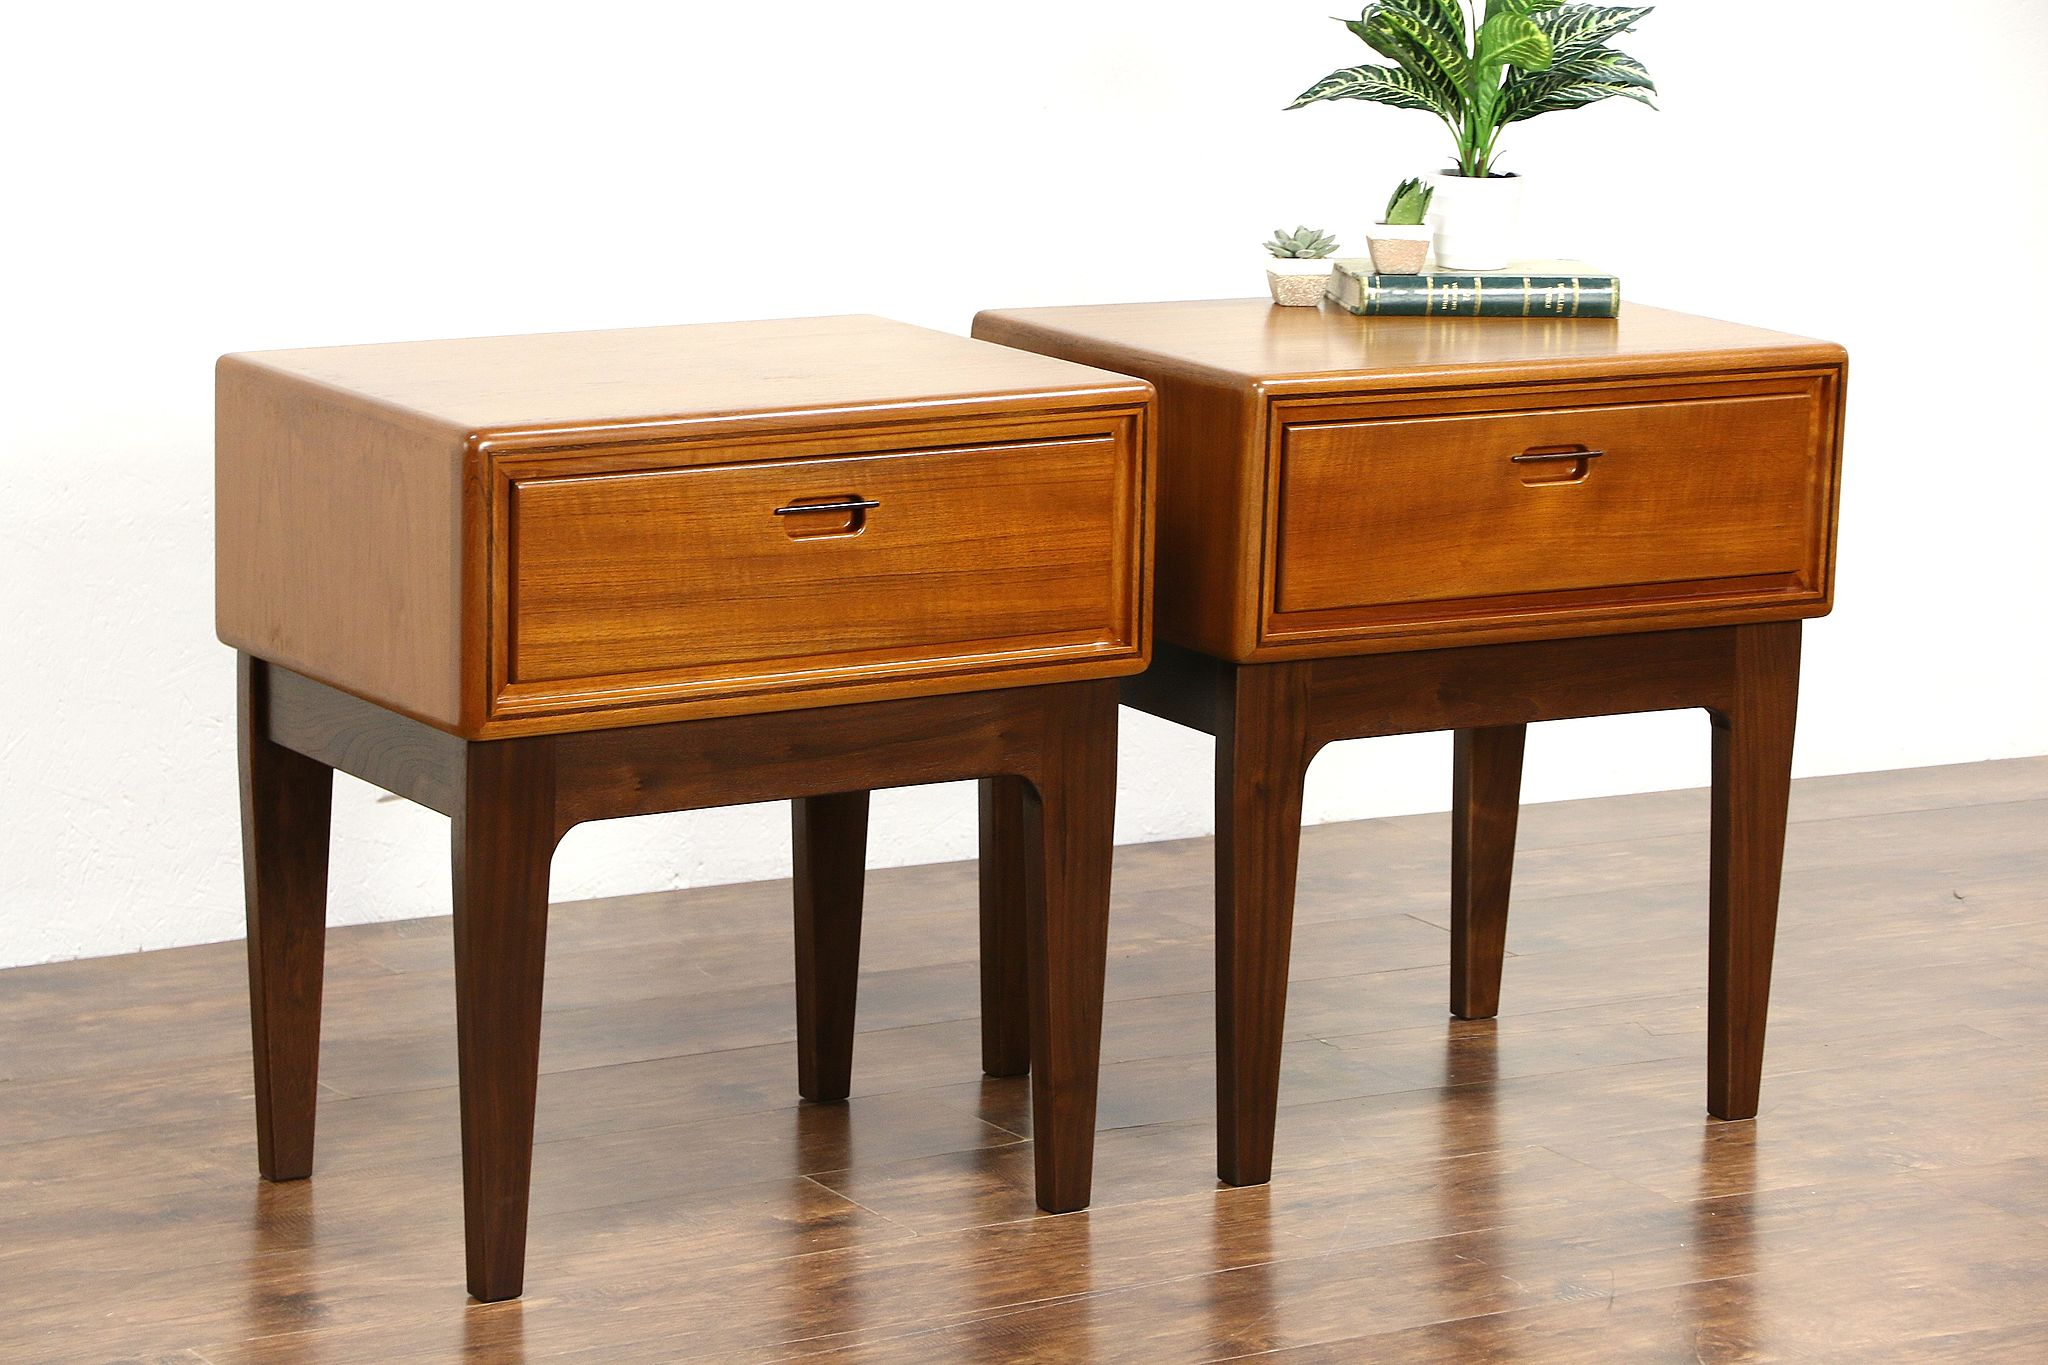 SOLD Nightstands, Bedside Tables - Harp Gallery Antiques